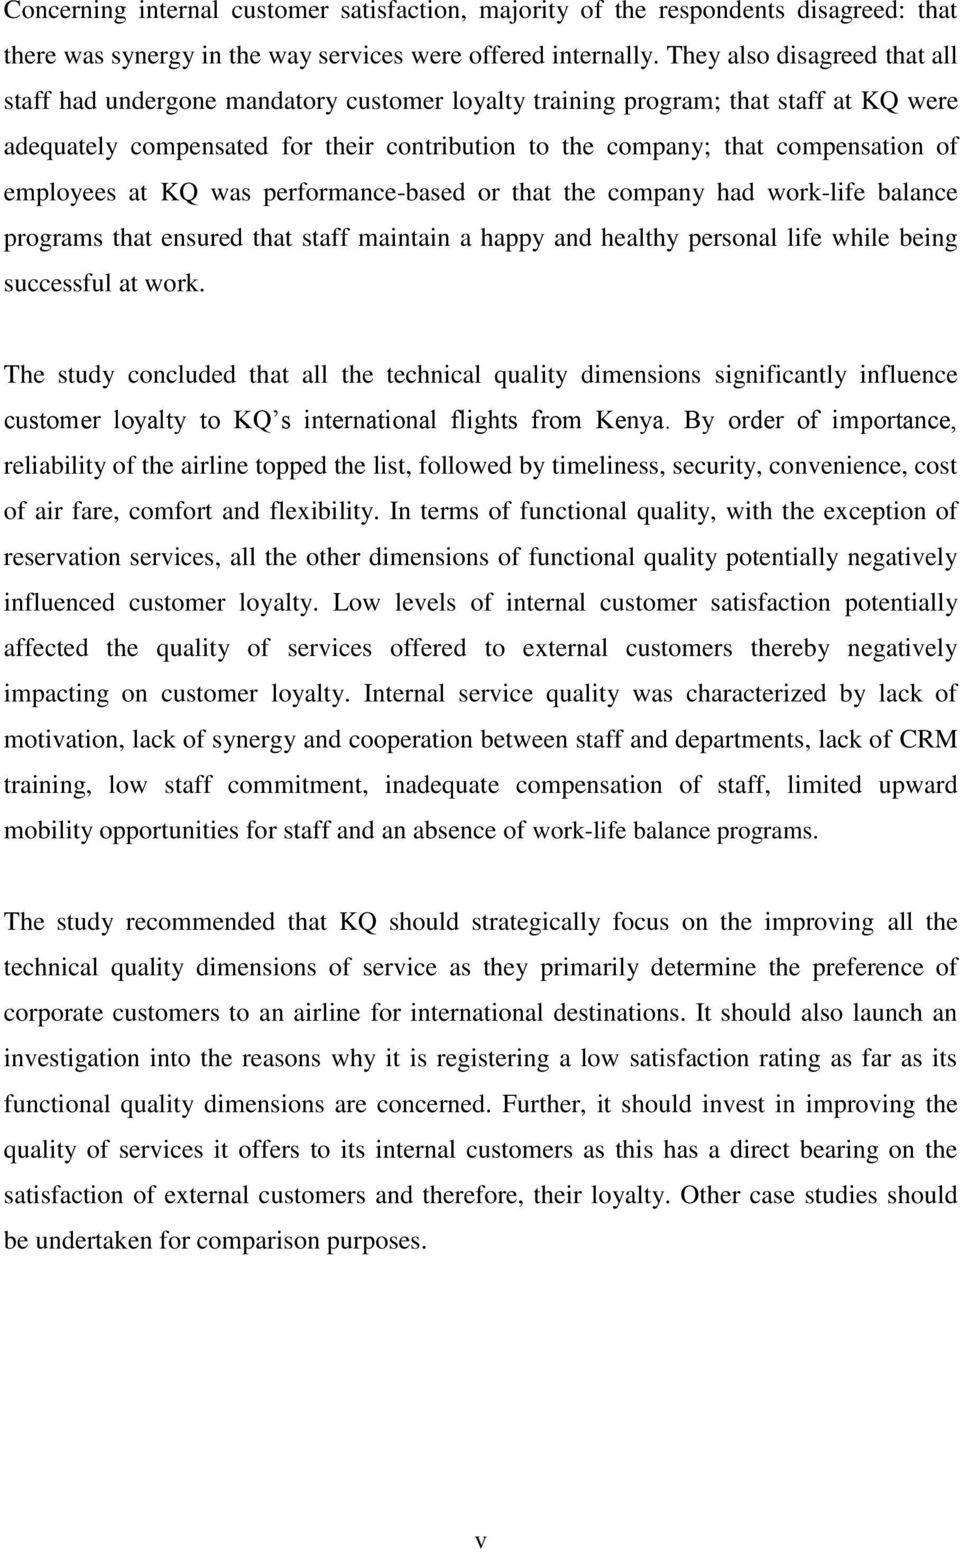 kenya airways case study The research studied kenya airways (kq), an industry leader in east africa   sustainable development of aviation industry a case study of kenya airways (kq) .